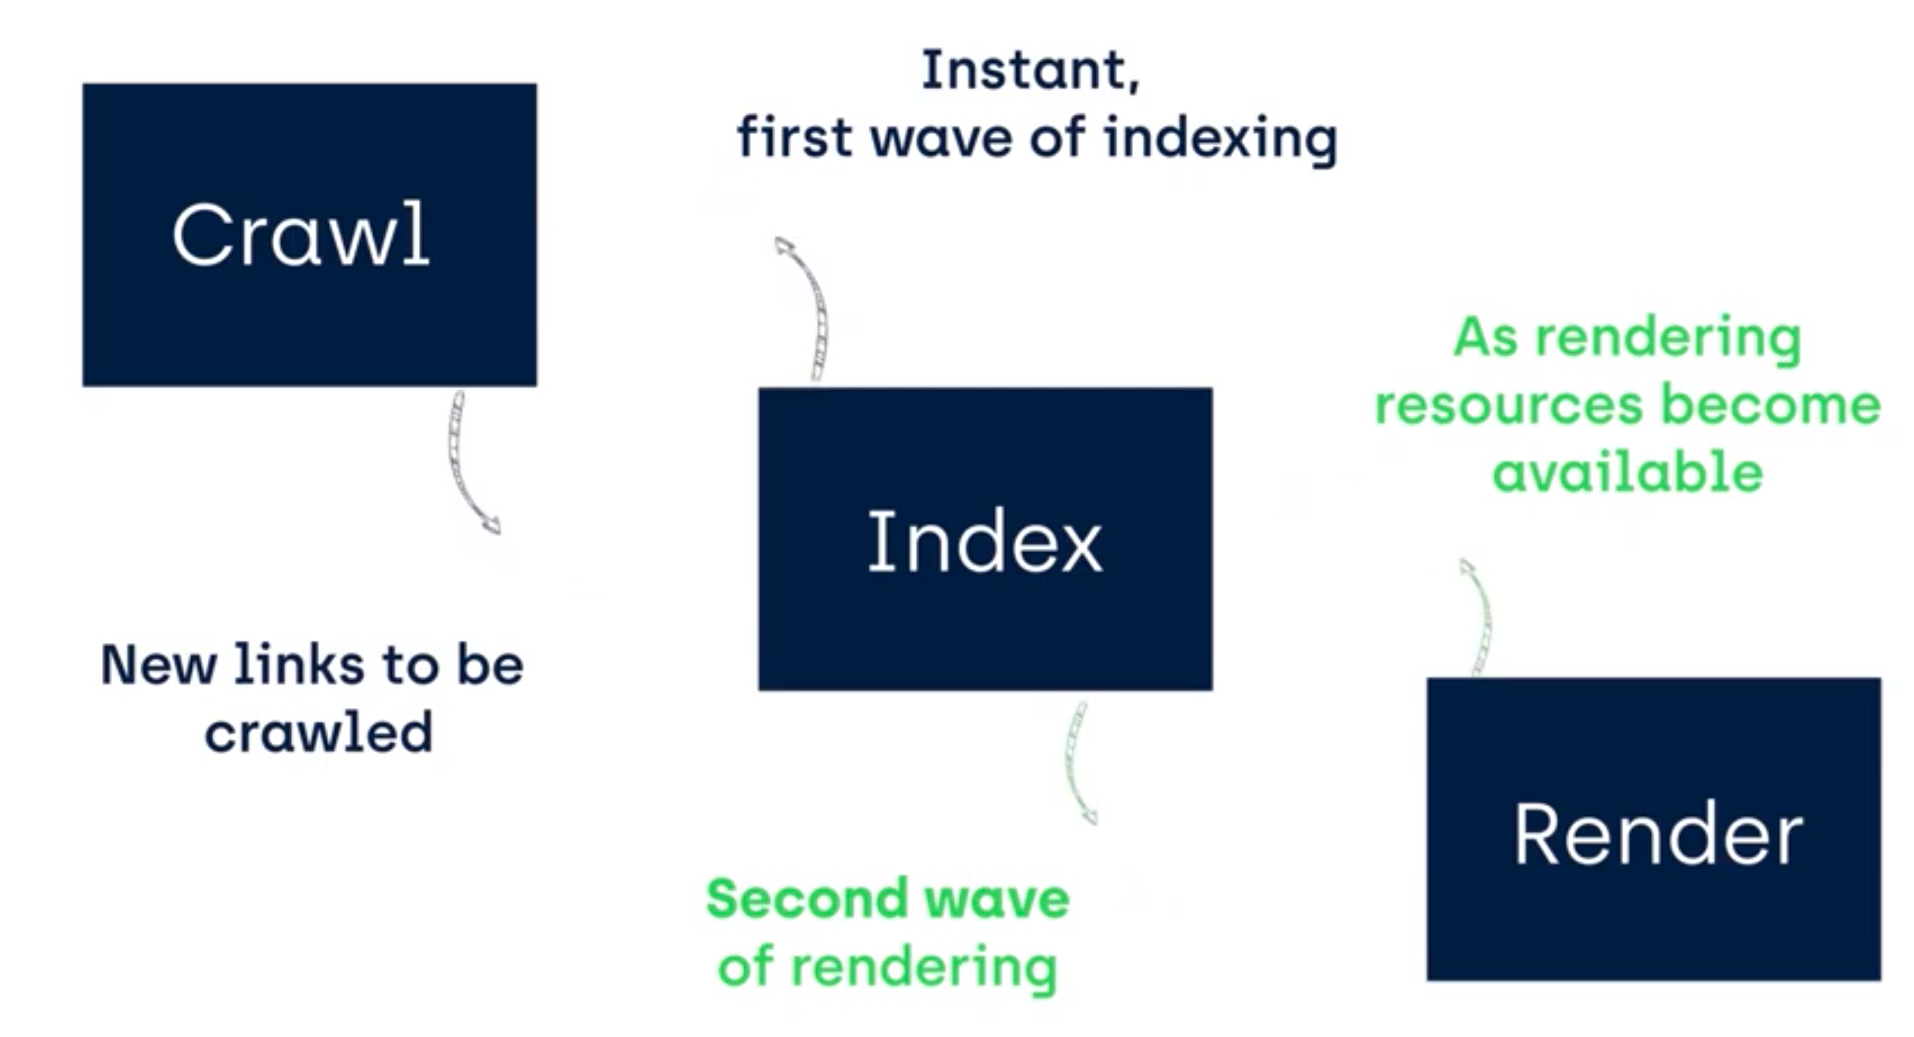 Two waves of indexing